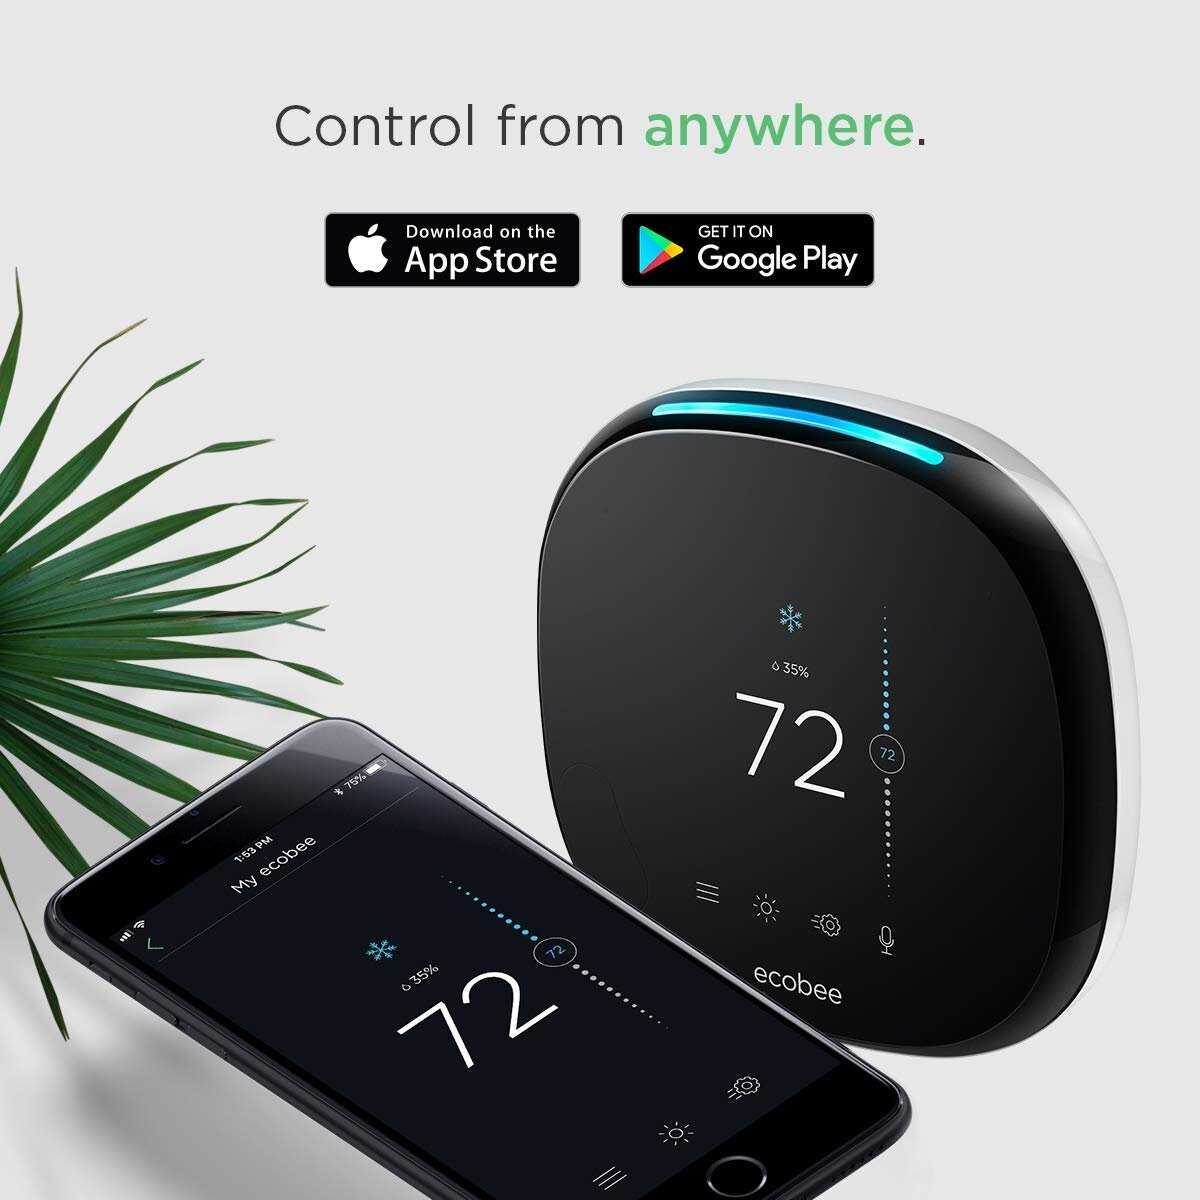 ecobee_4_control_from_anywhere.jpg